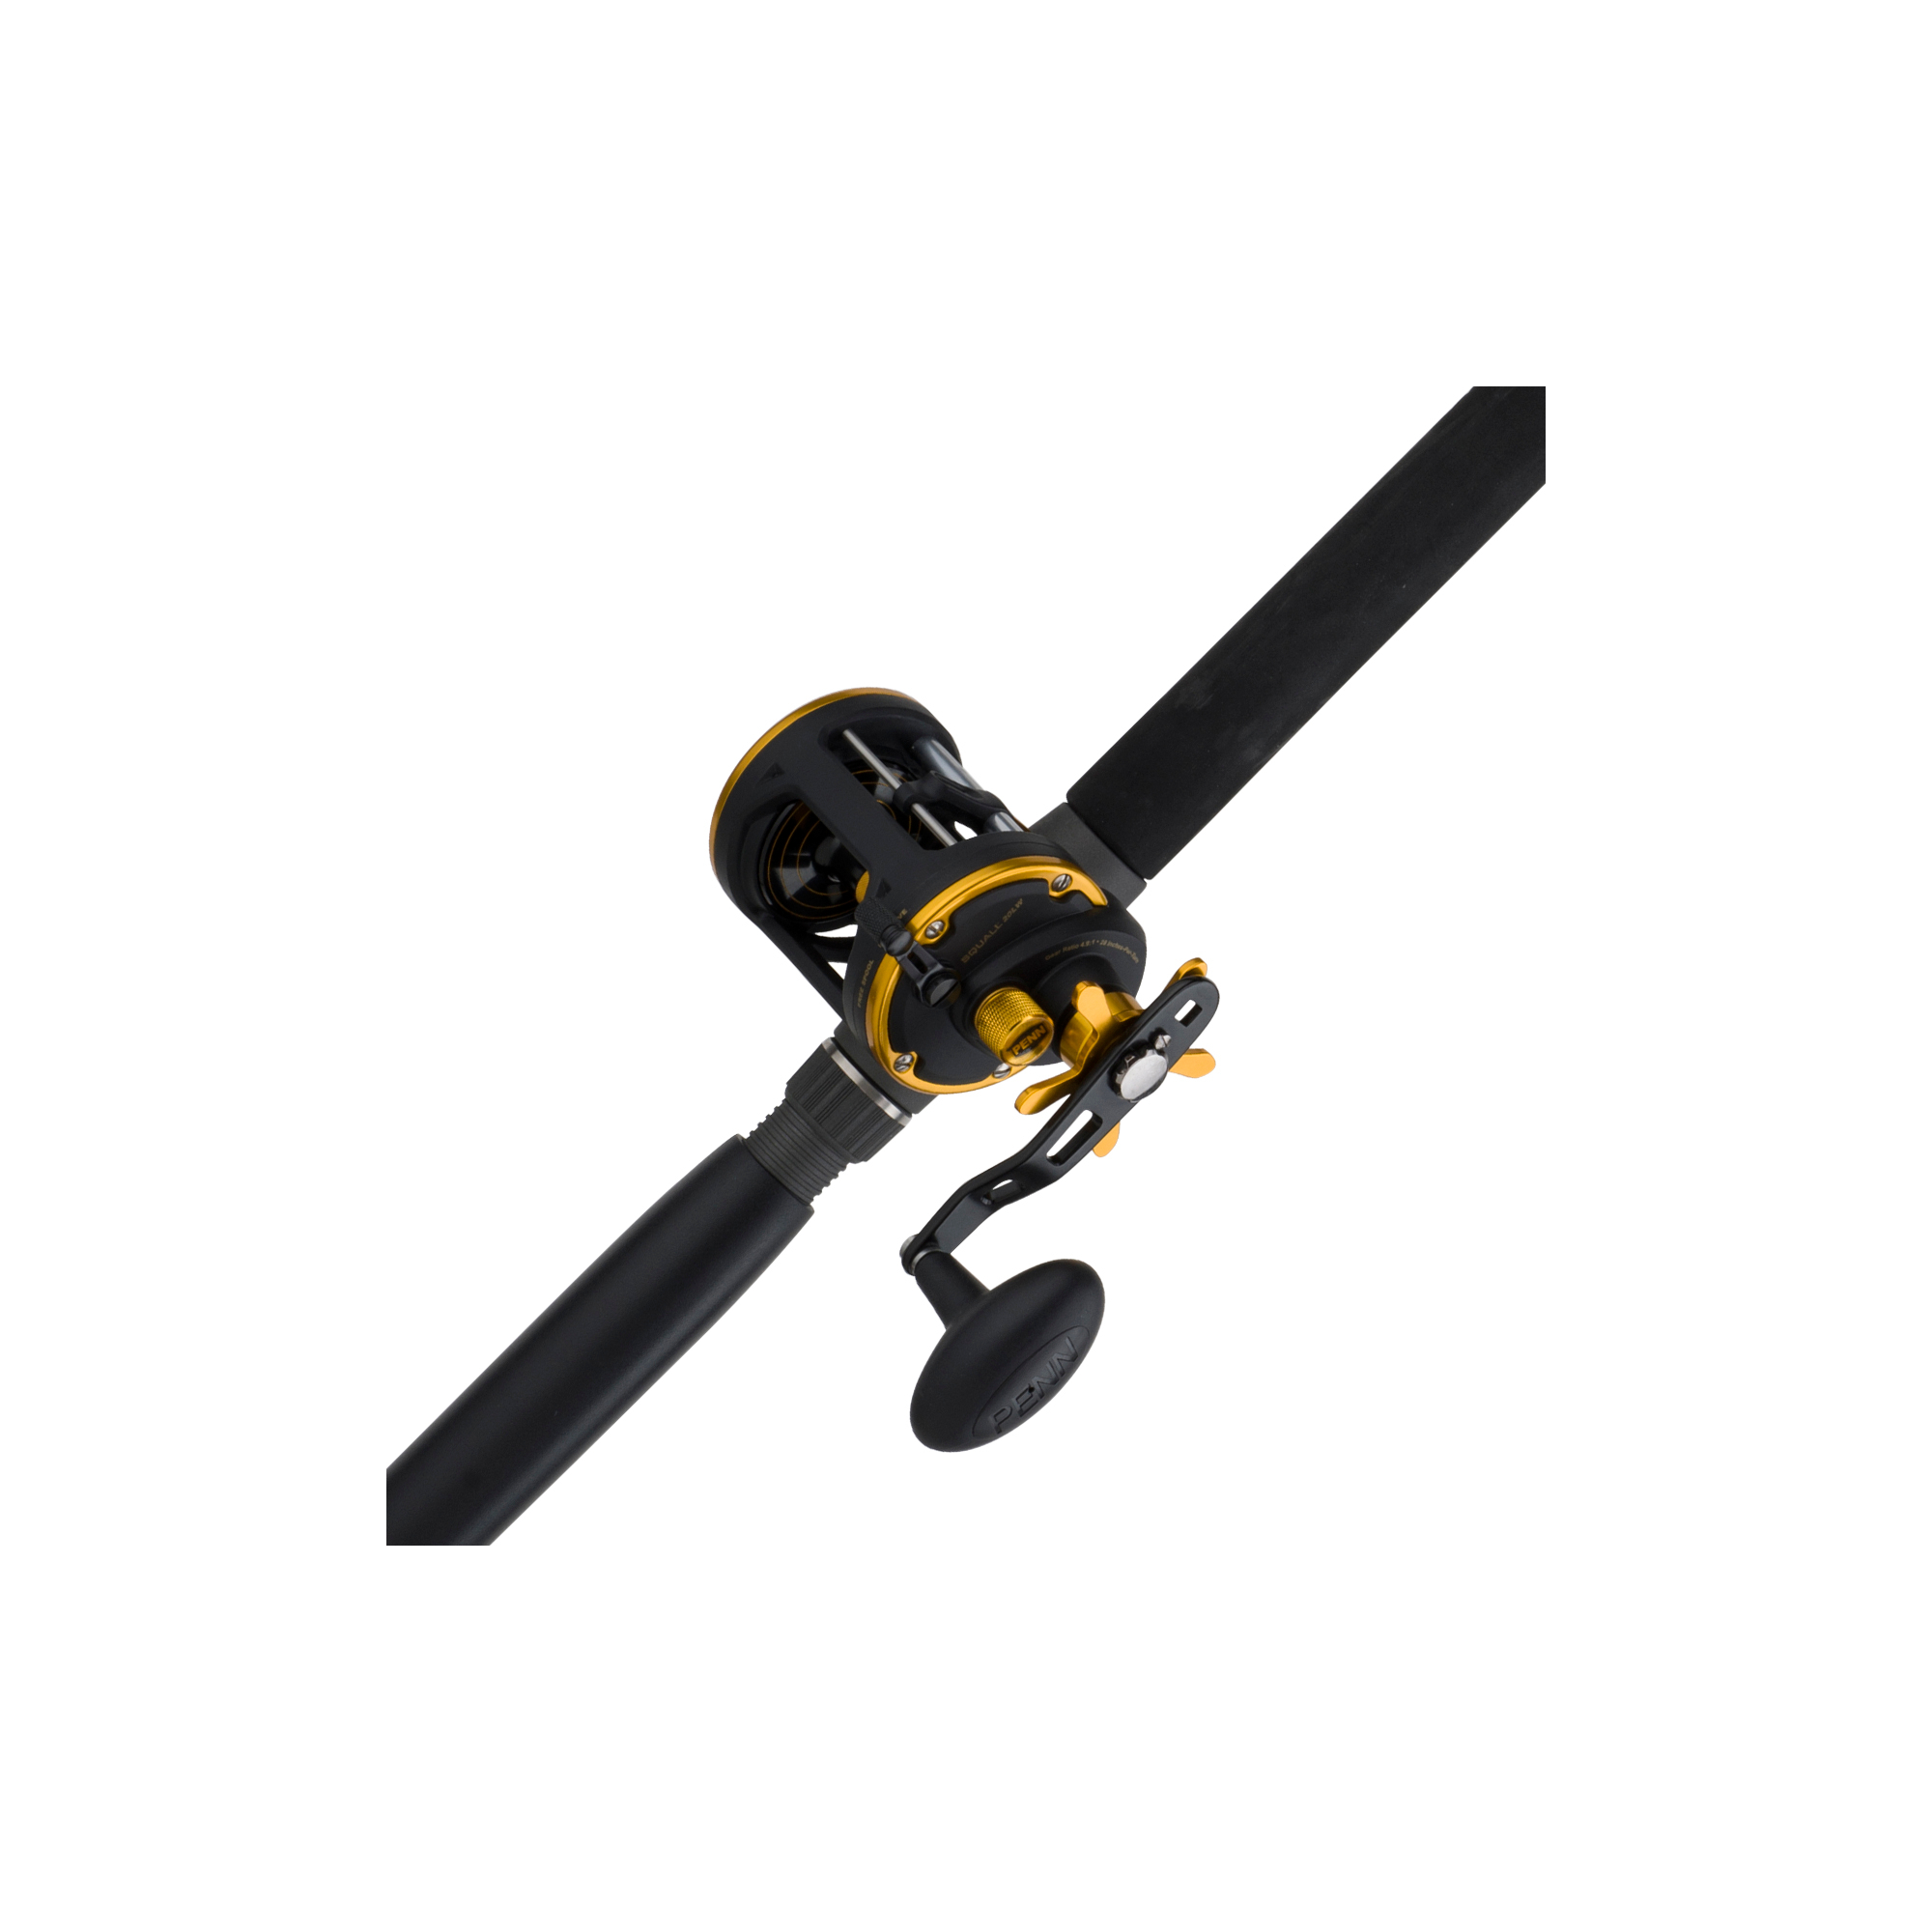 Penn Squall Level Wind Conventional Reel and Fishing Rod Combo by Penn